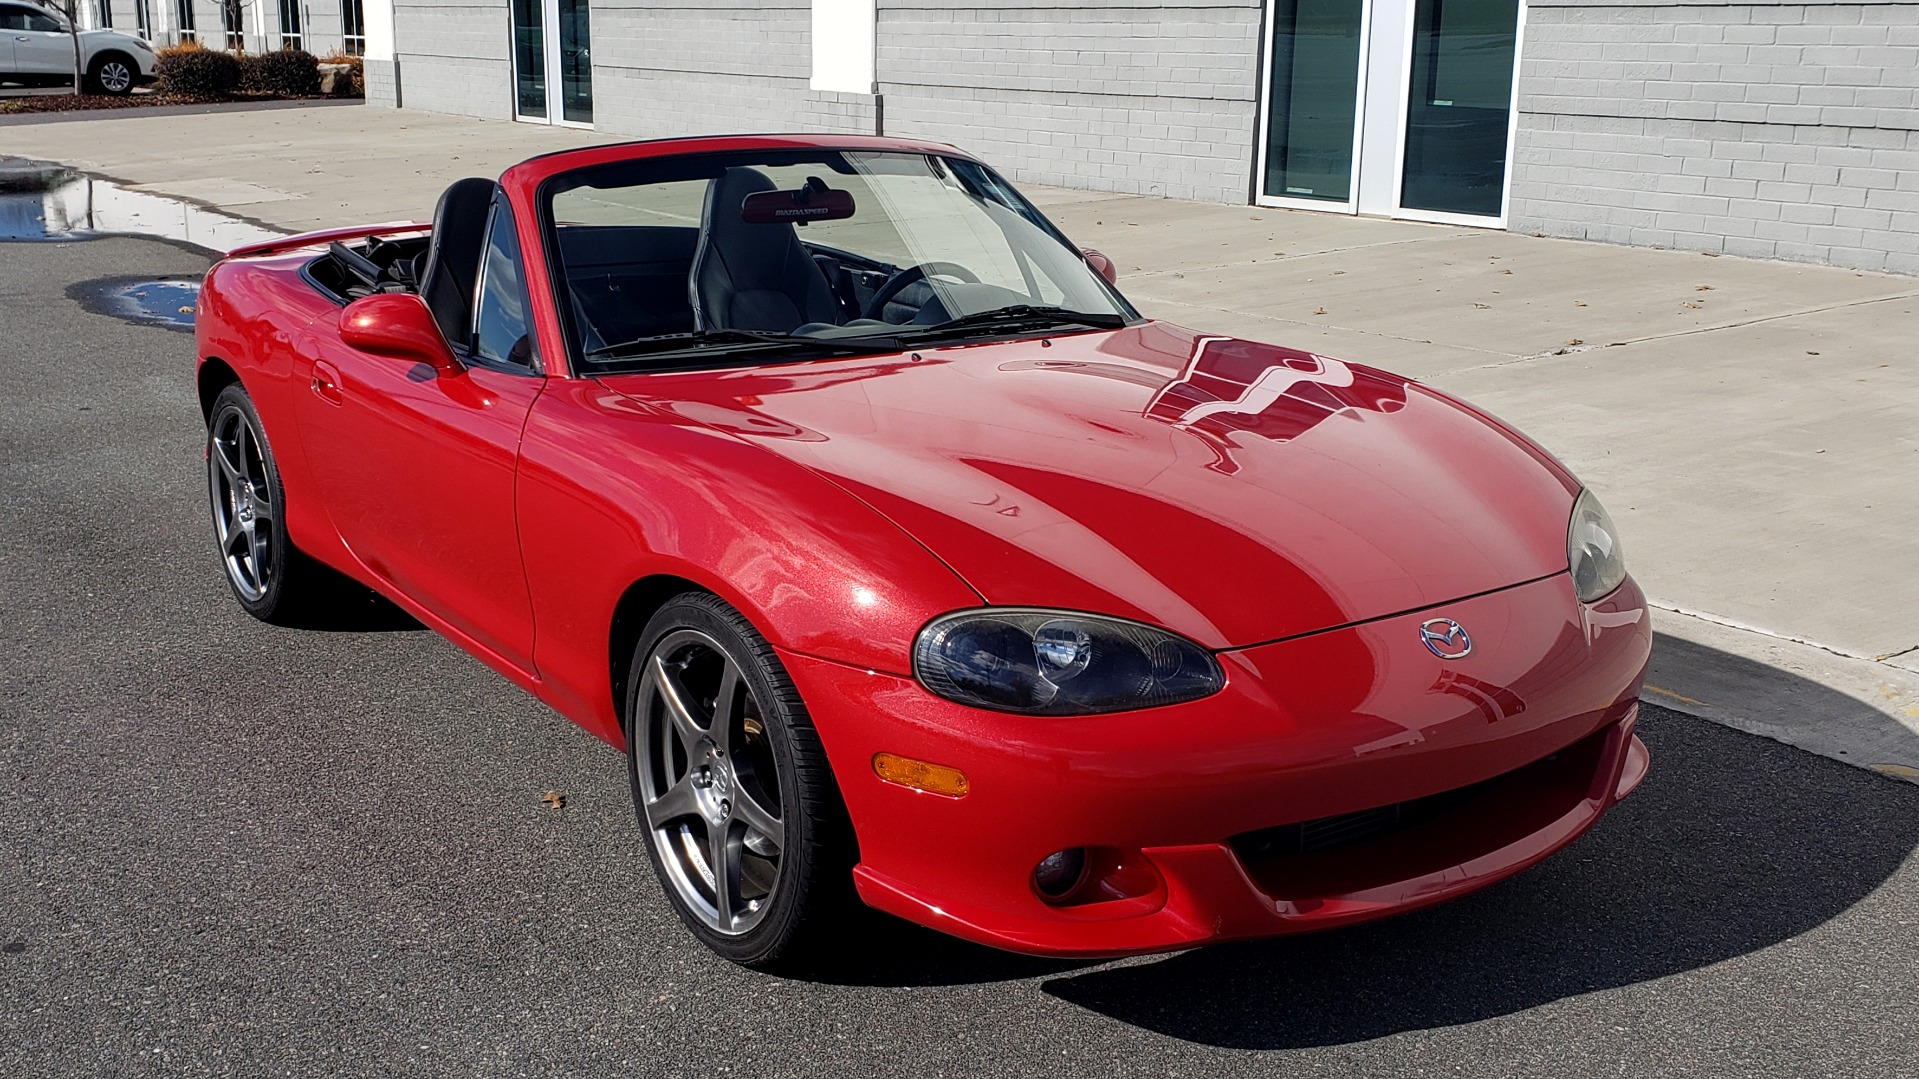 Used 2004 Mazda MX-5 MIATA 2DR CONVERTIBLE MAZDASPEED / GRAND TOURING PKG for sale Sold at Formula Imports in Charlotte NC 28227 11